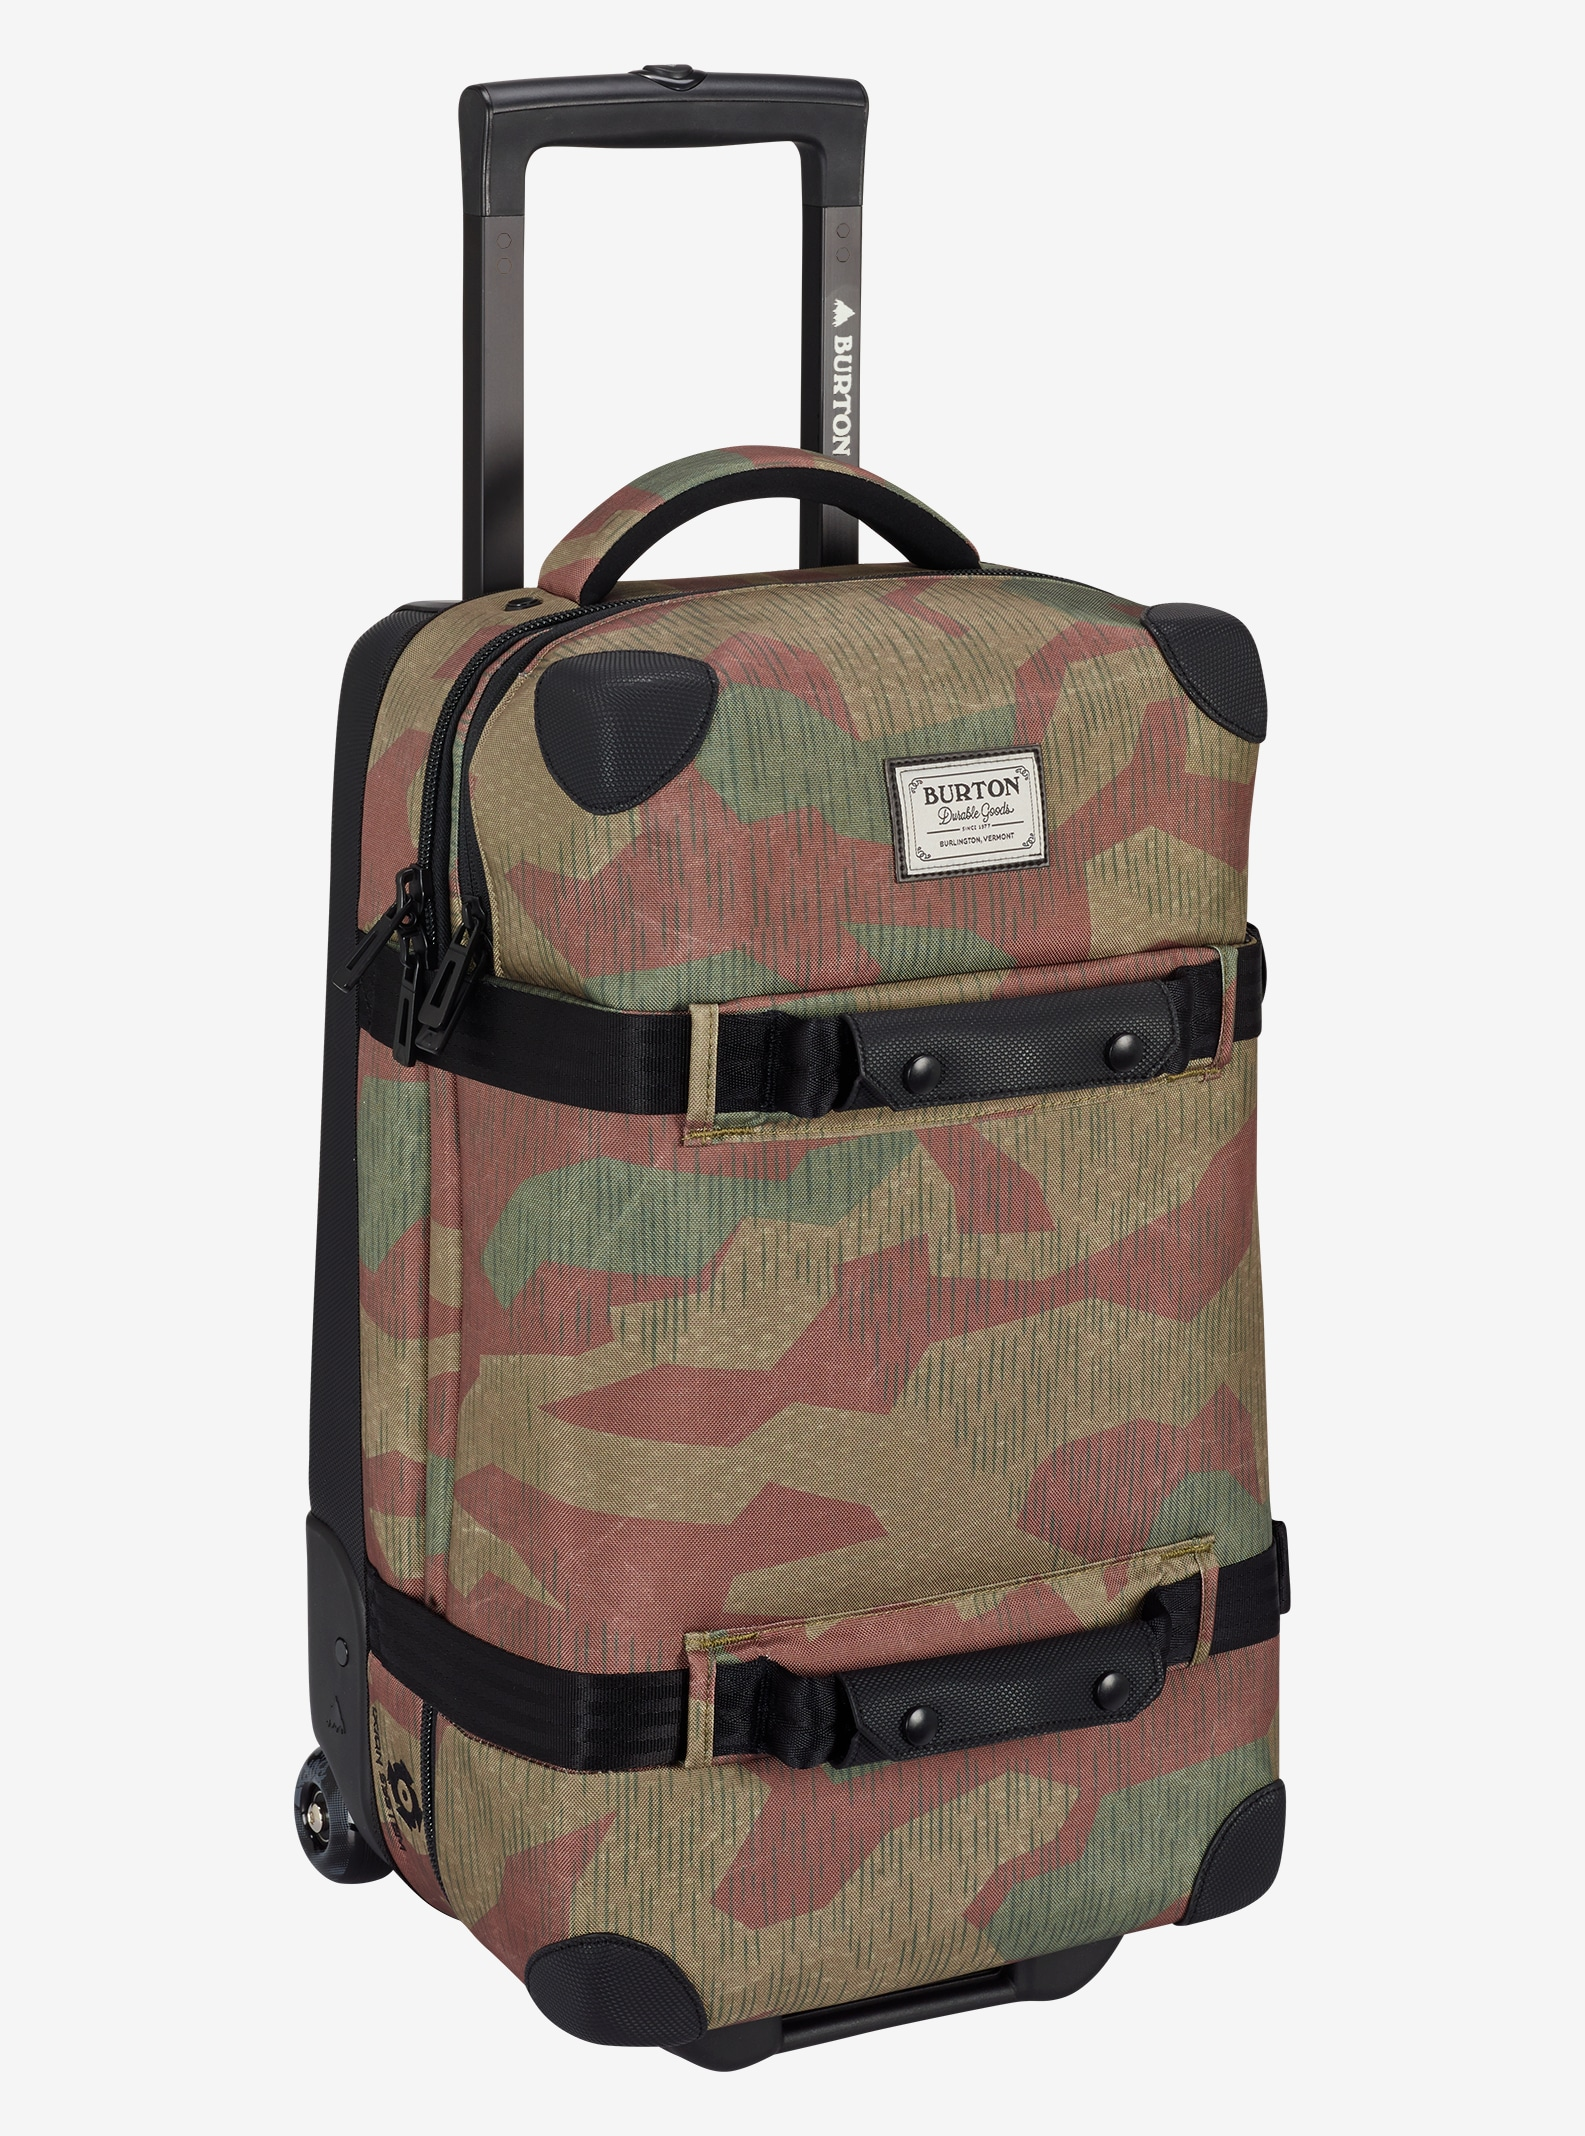 Burton Wheelie Flight Deck Travel Bag shown in Splinter Camo Print